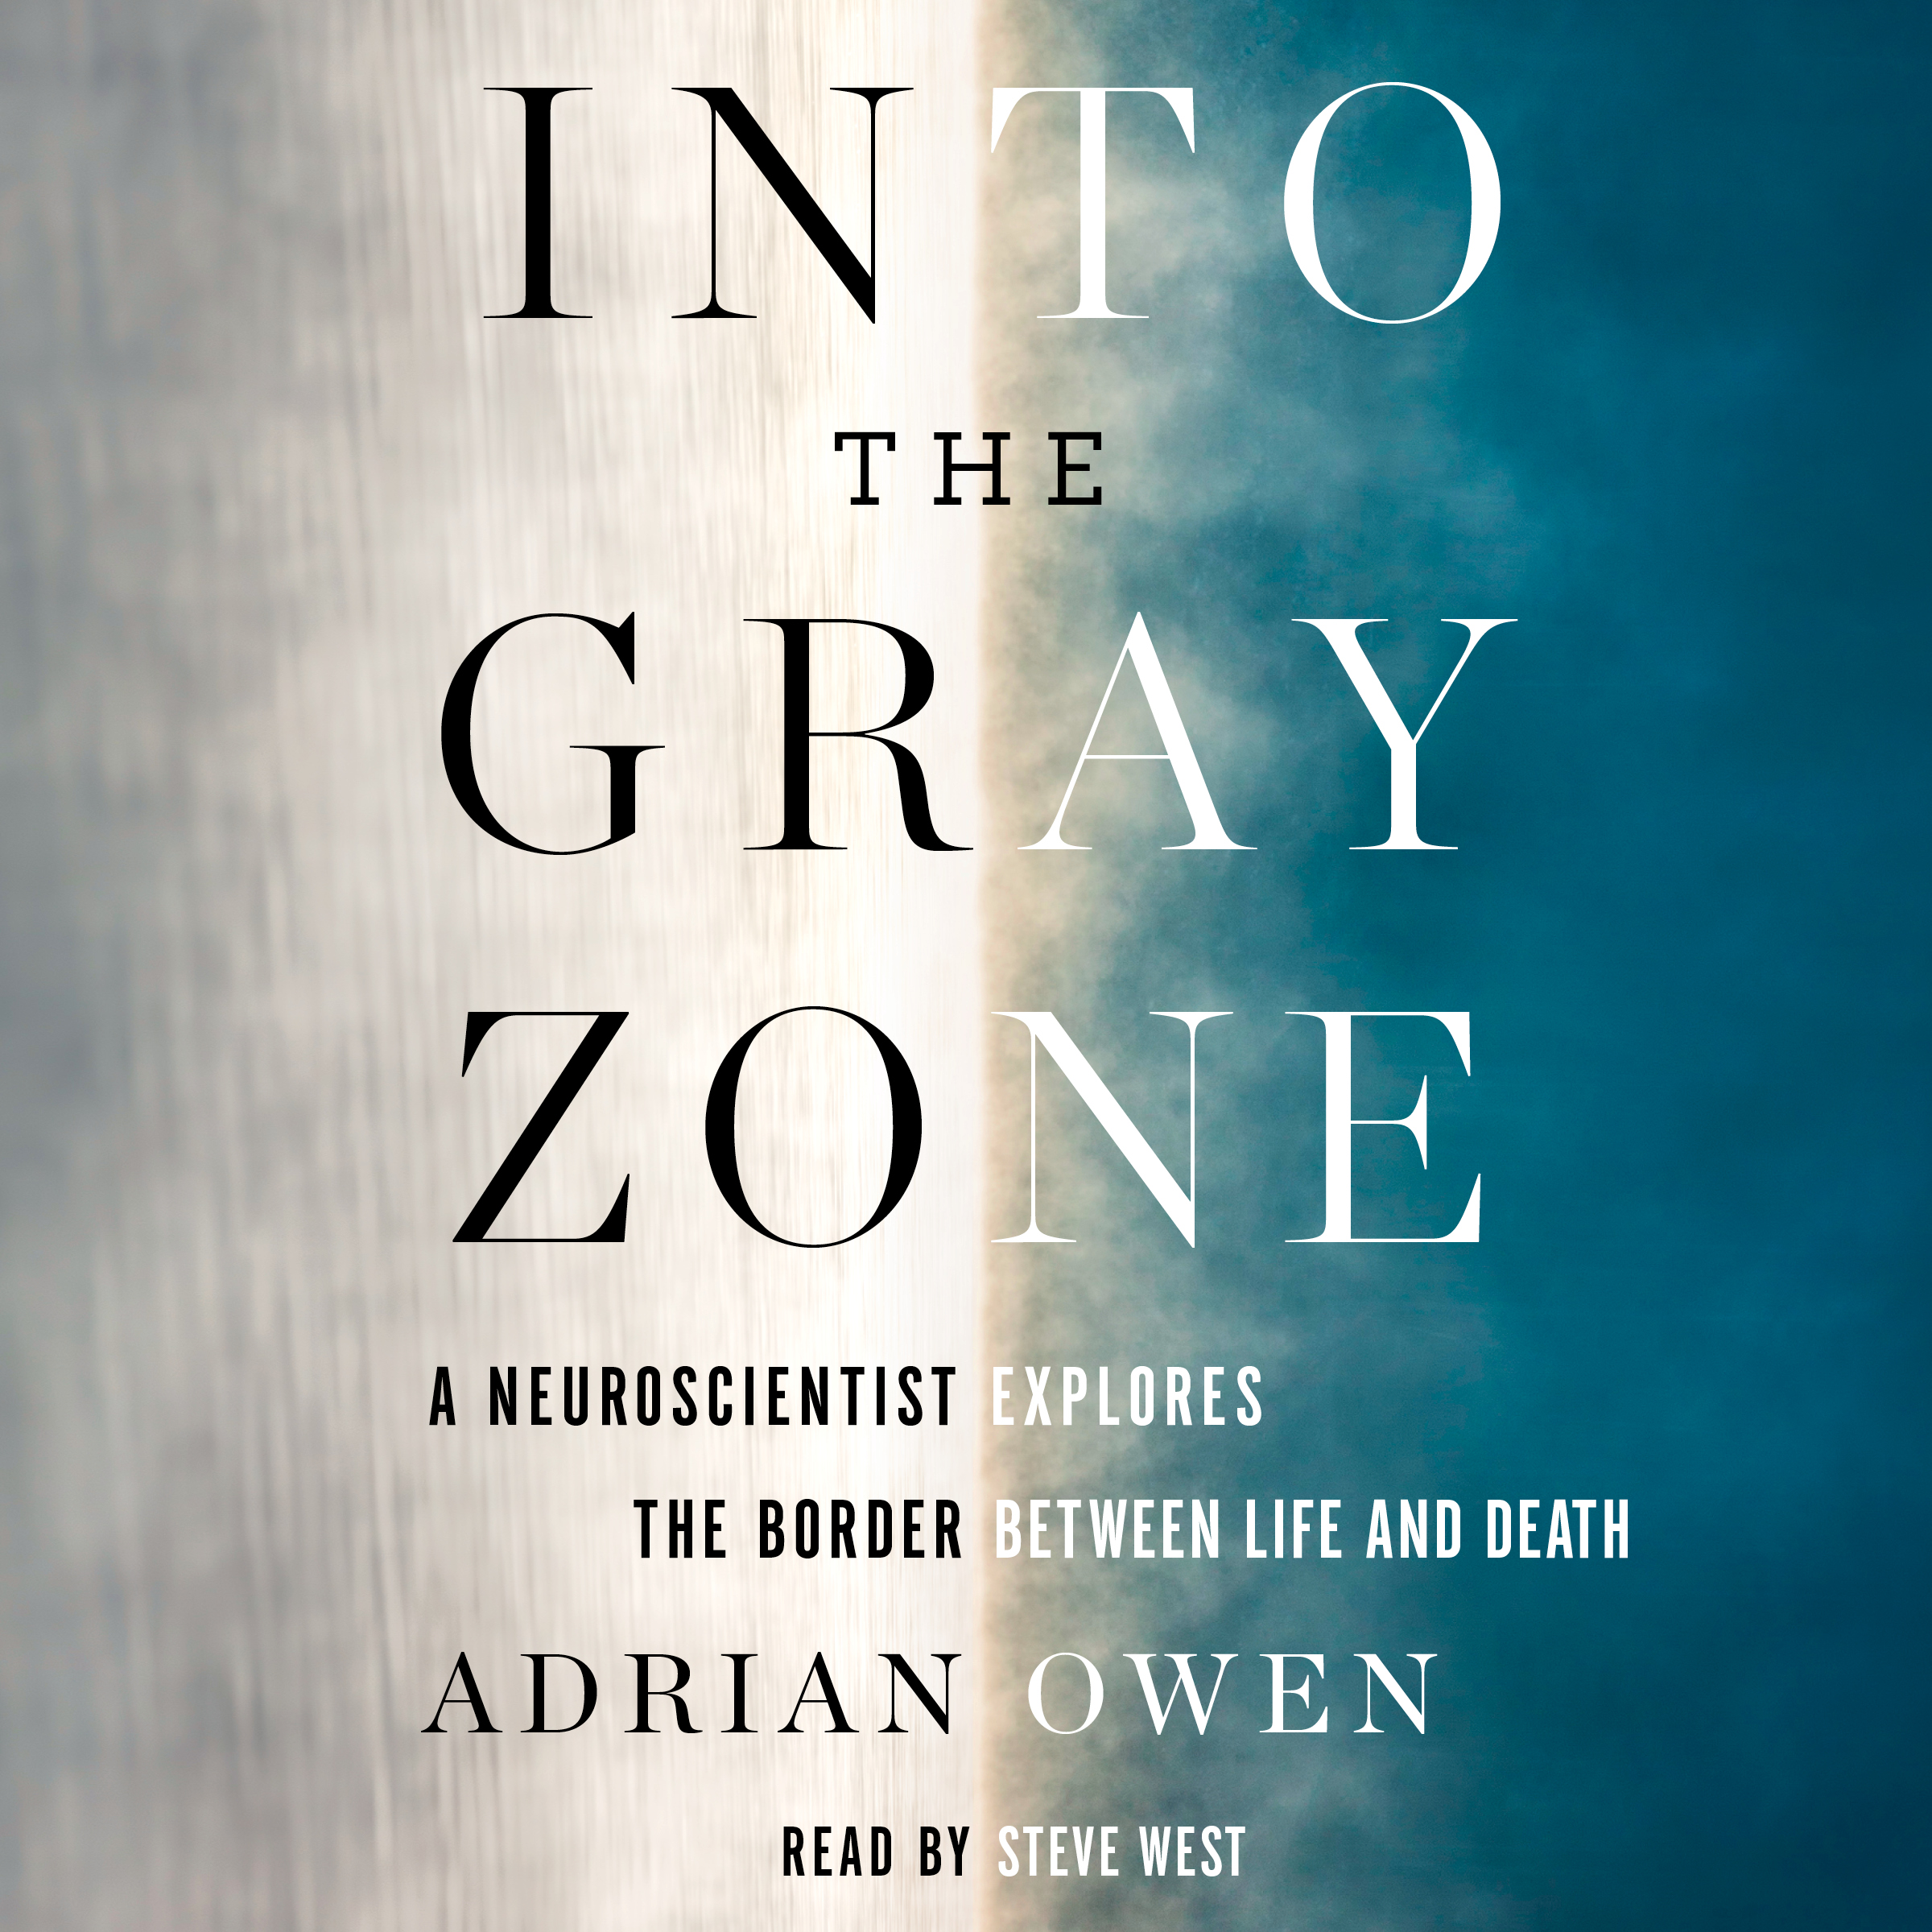 Into the gray zone 9781508239154 hr